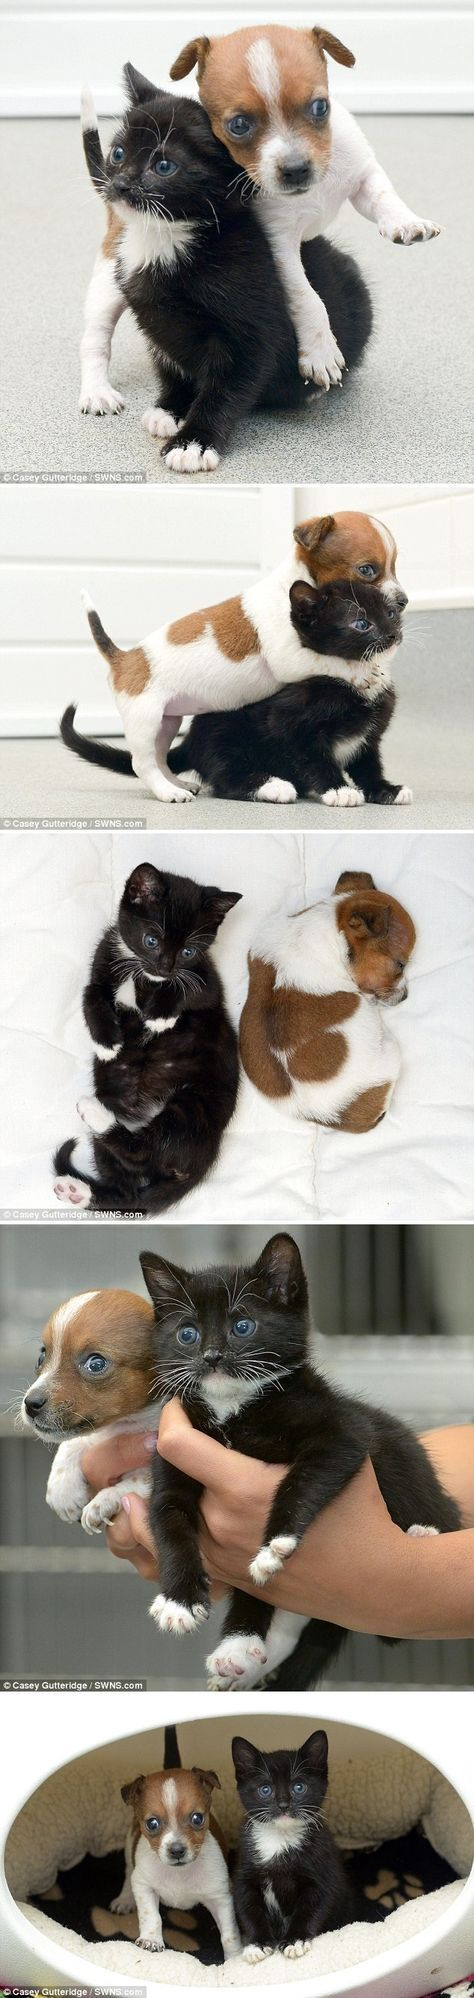 Kitty The Cat And Buttons The Jack Russell Think They Are Sisters After Being Put Together At Rescue Centre Cute Animals Pets Animals